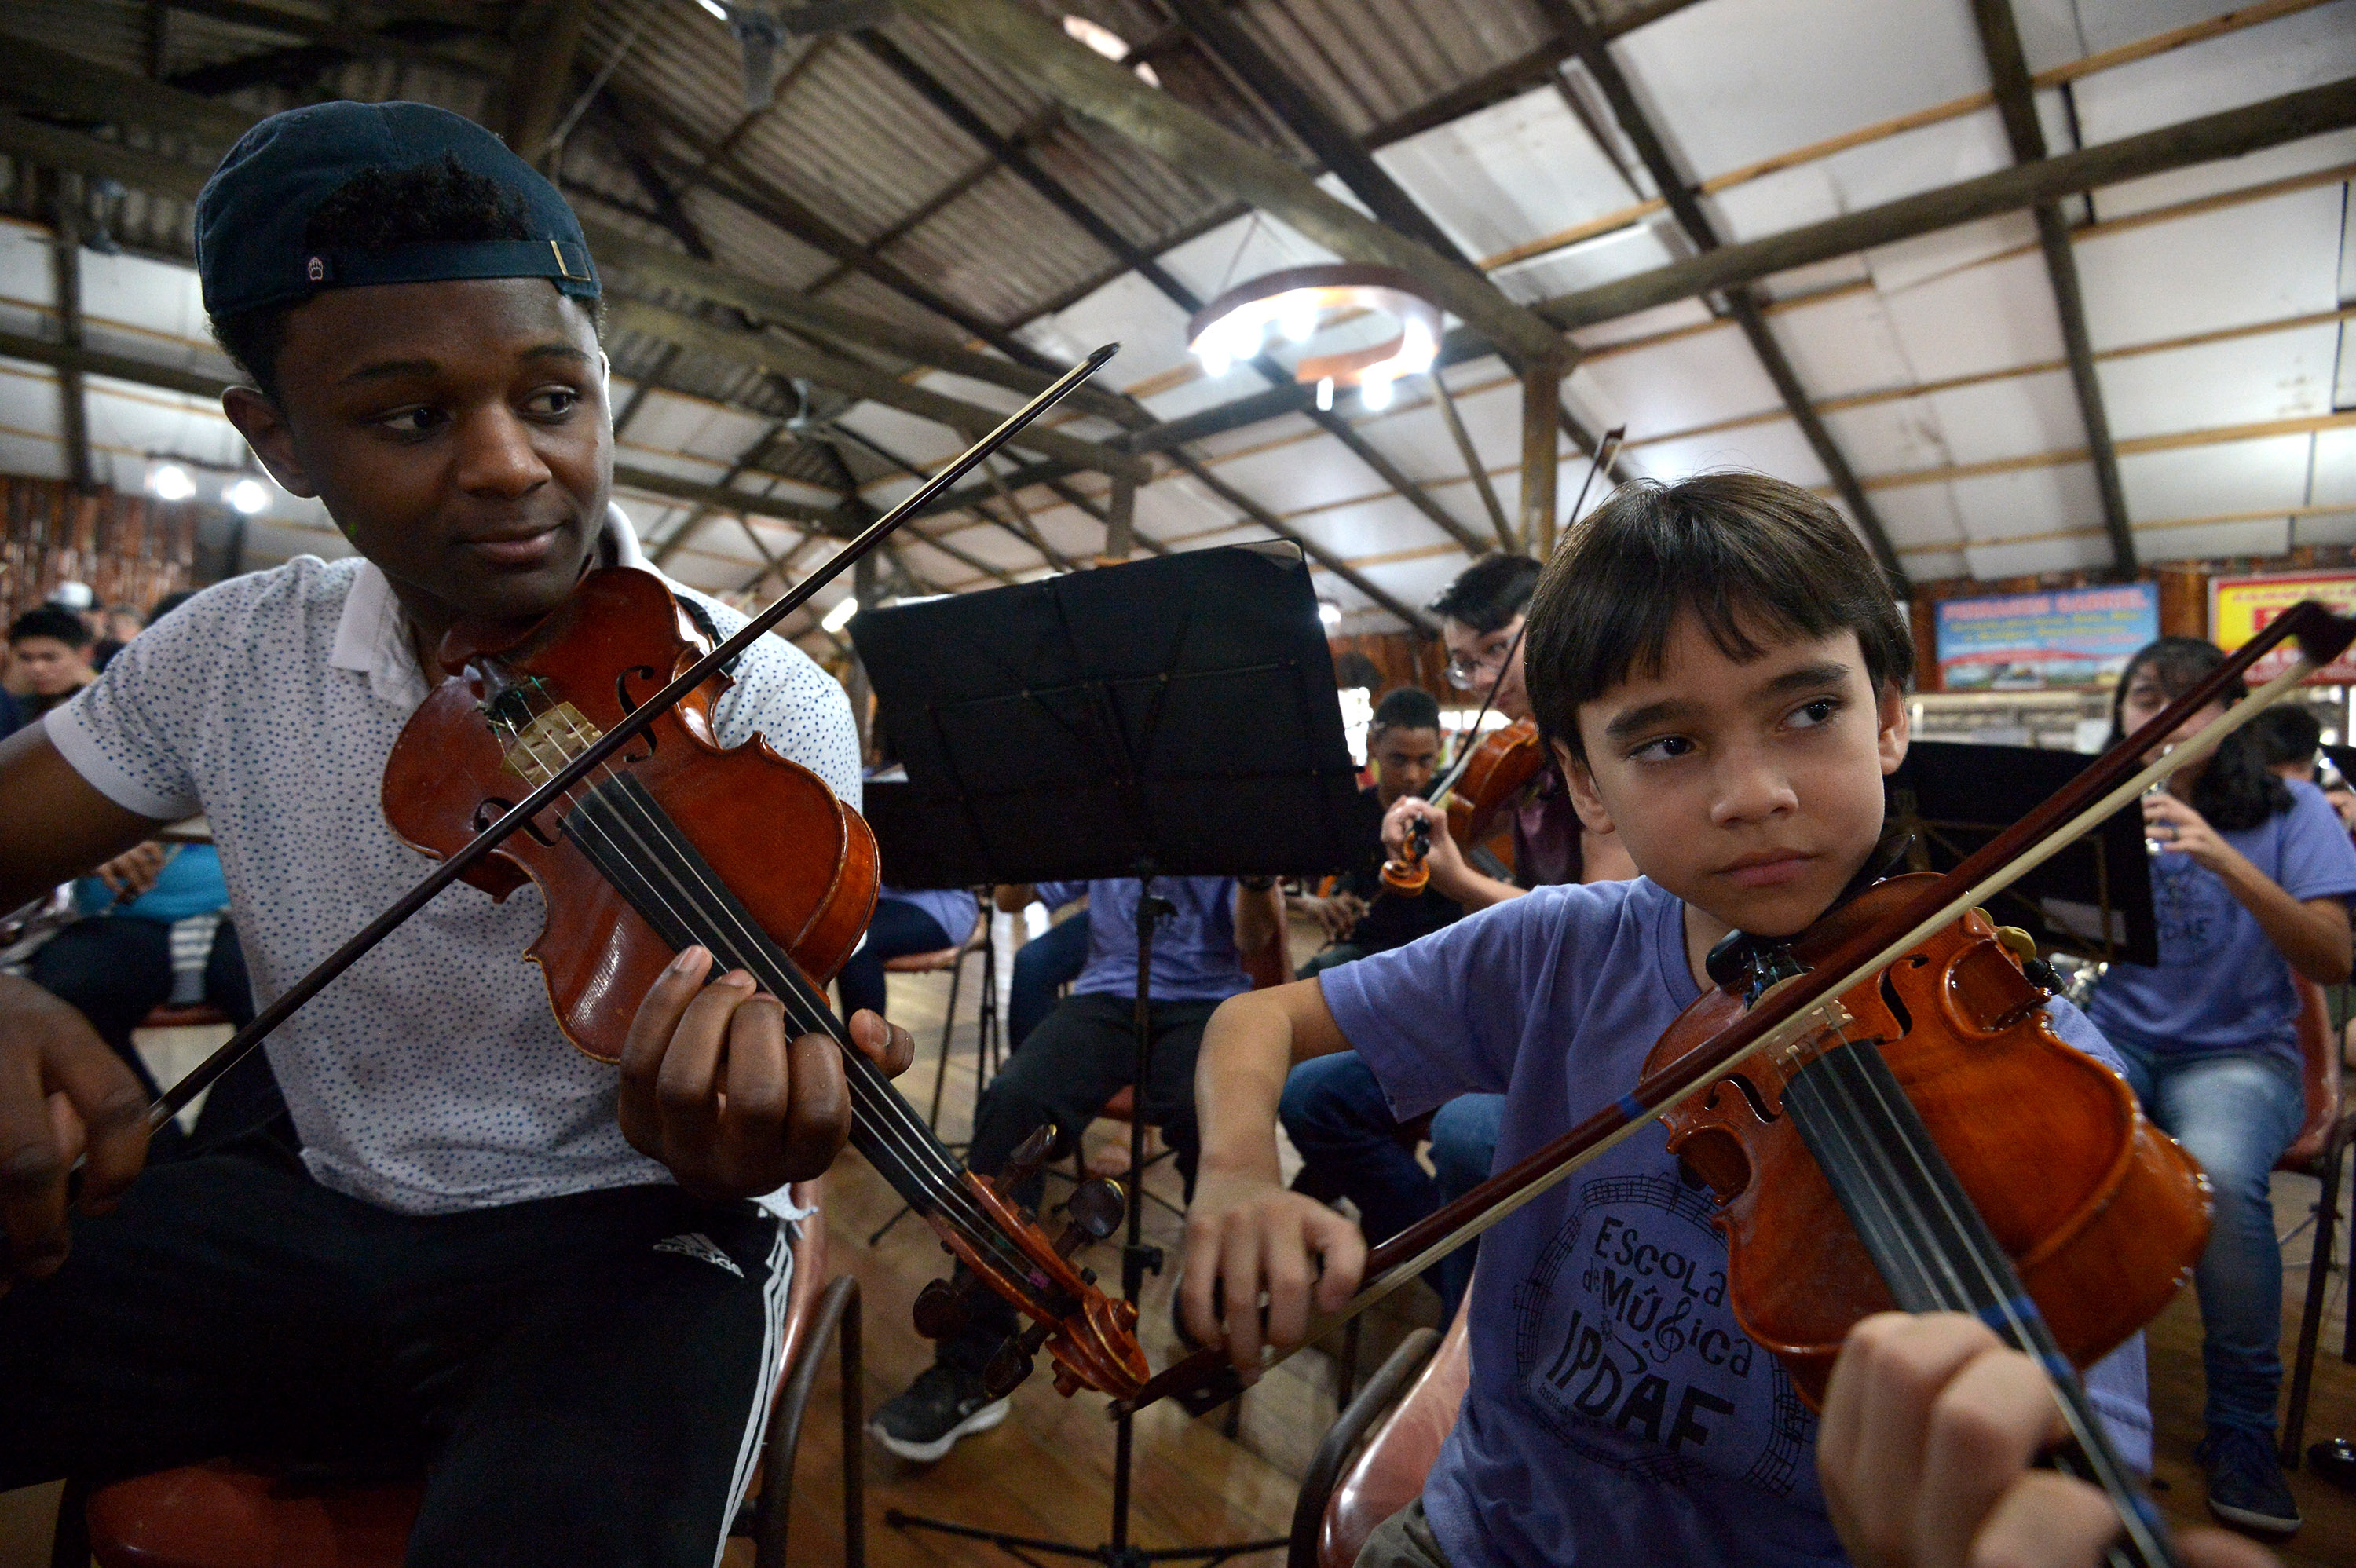 BPYO violinist Kerby Roberson with an eight-year-old colleague in Porto Alegre